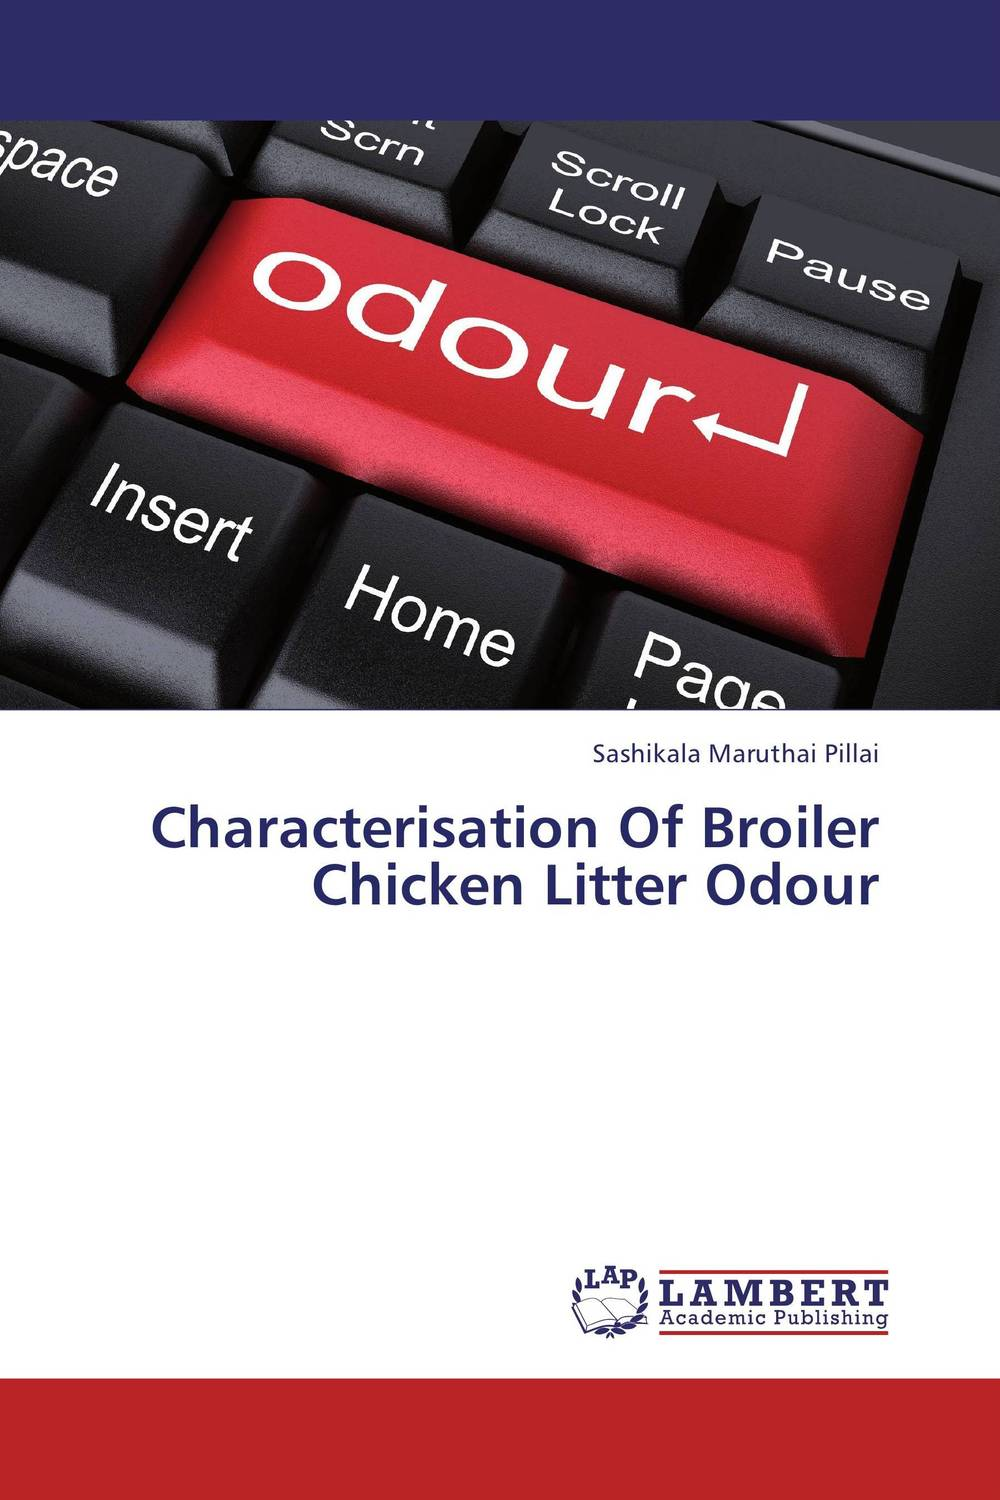 Characterisation Of Broiler Chicken Litter Odour джонс эрл ди эм экс dmx the definition of x pick of the litter limited edition cd dvd